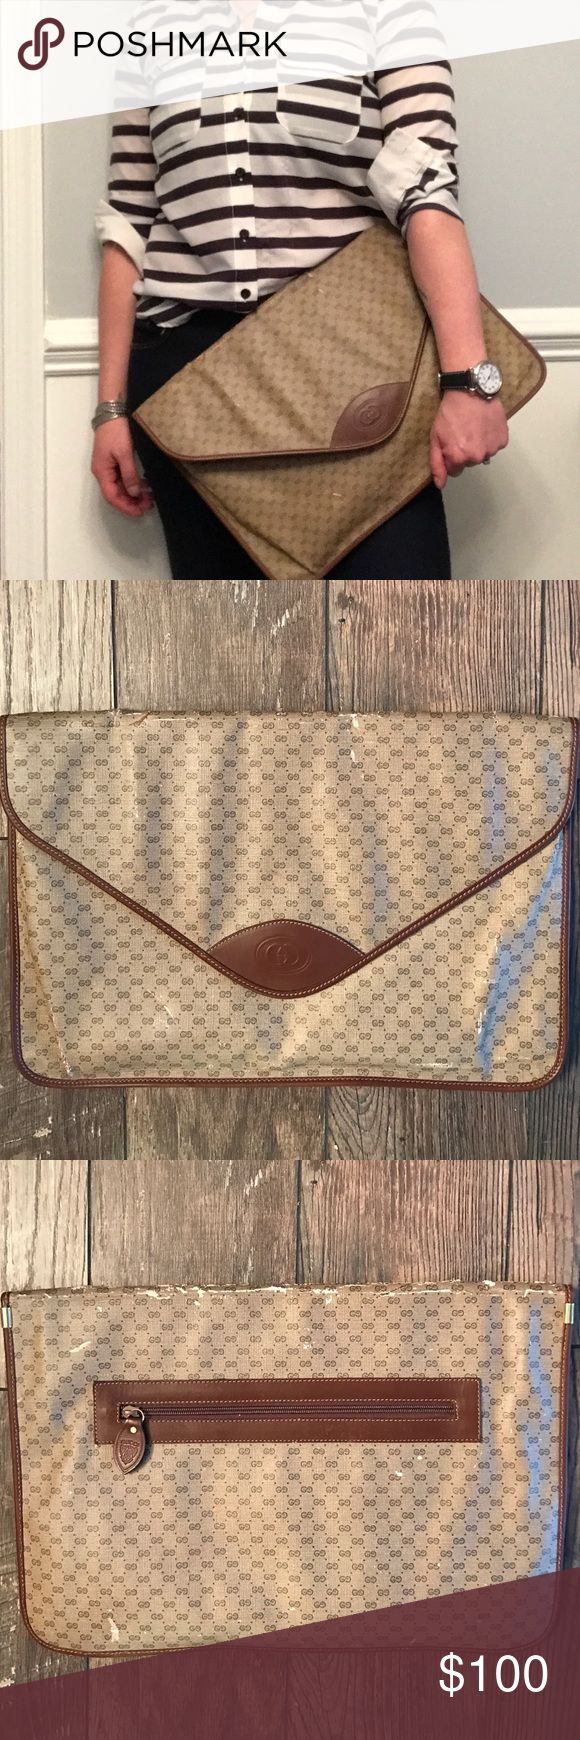 Vintage Gucci Large Envelope Clutch Vintage Gucci large envelope clutch! Such a fun accessory to carry your belongings in! Would be awesome for a hip business savvy gal to store her iPad or laptop!! Measures 11inx16.5 in! Shows wear as it is from the 60s or 70s! Controllato card shown in picture! Gucci Bags Clutches & Wristlets